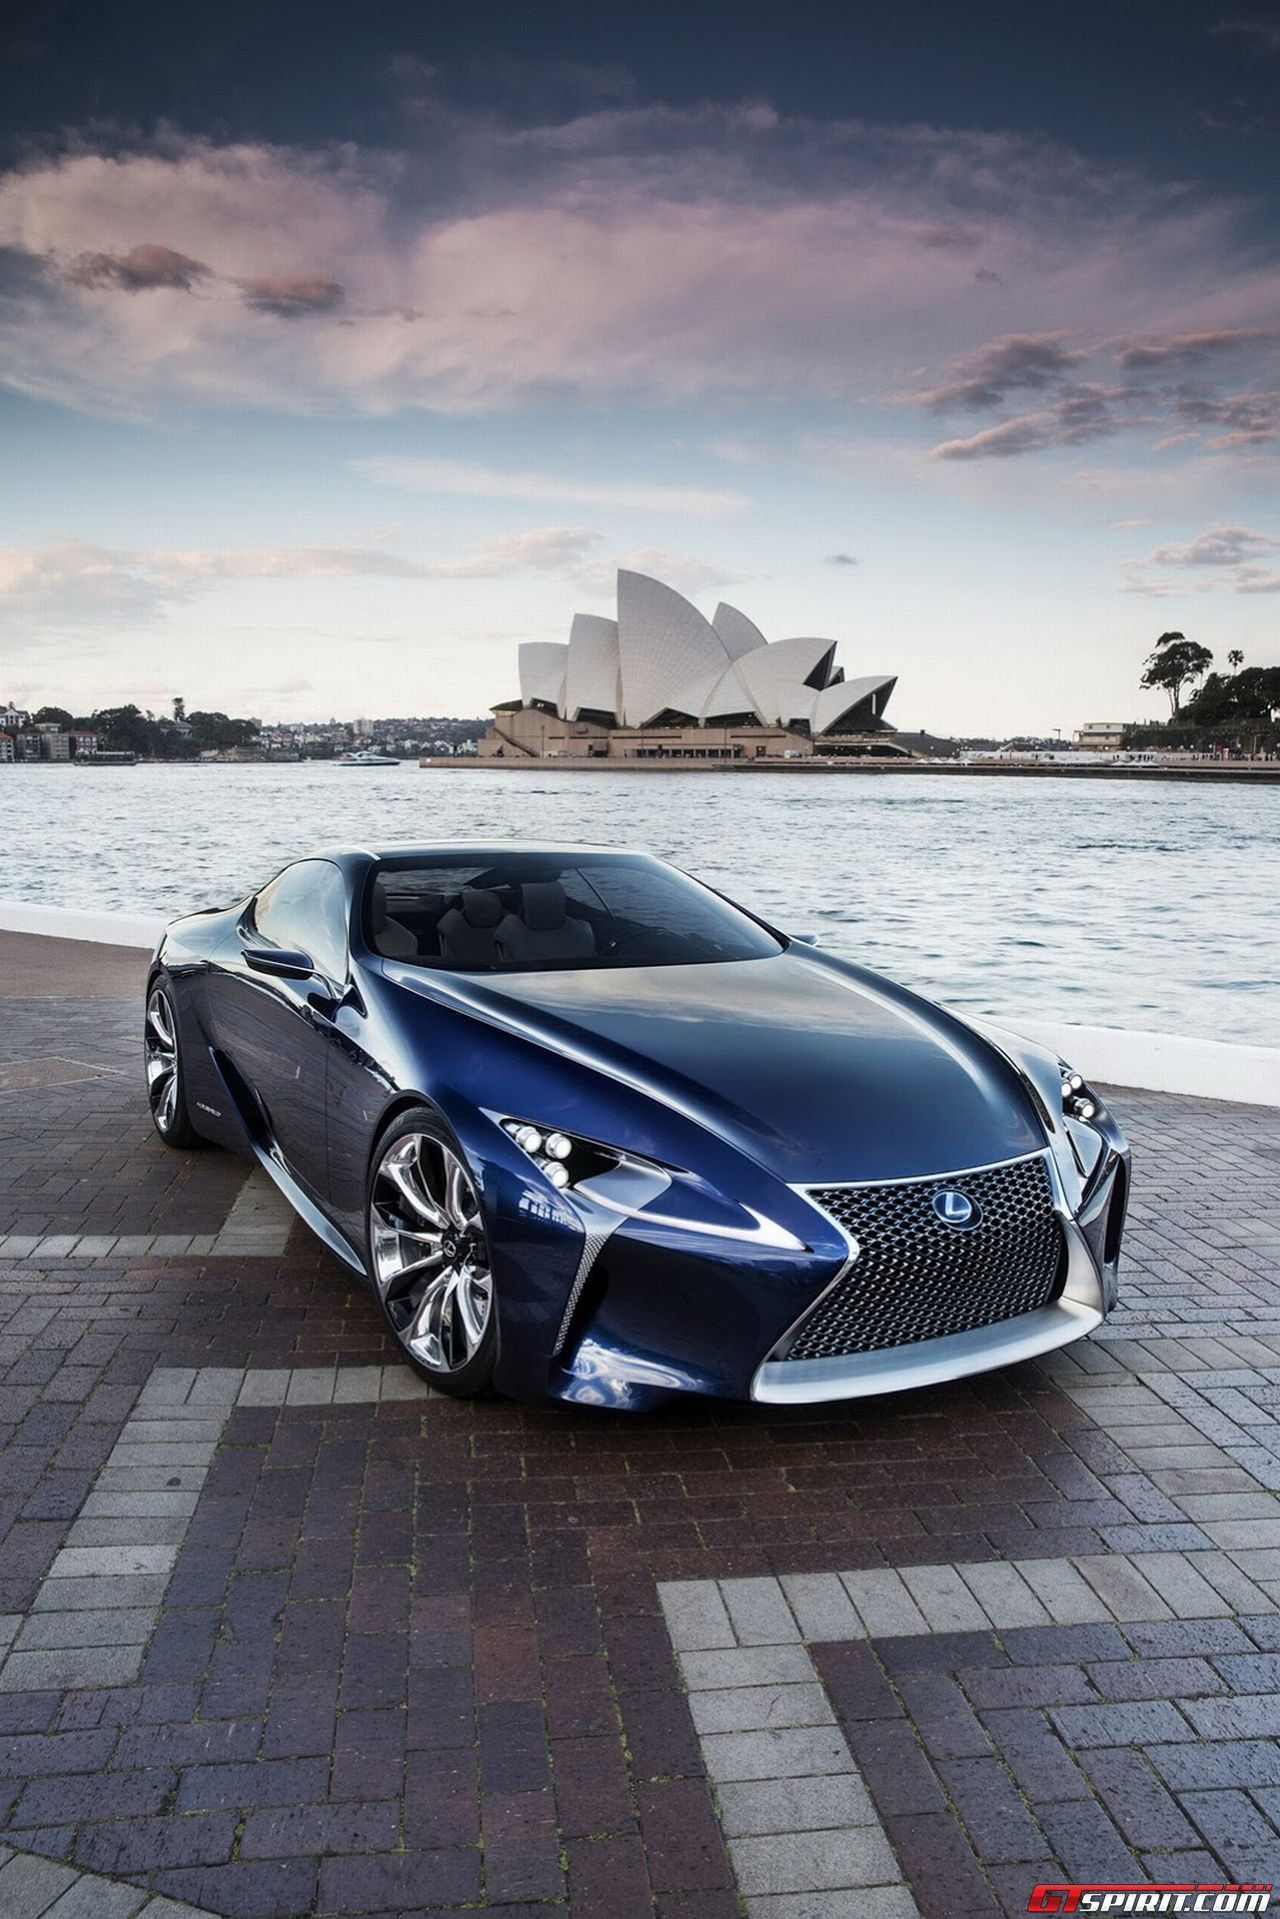 Lexus has recently released the very first presentation